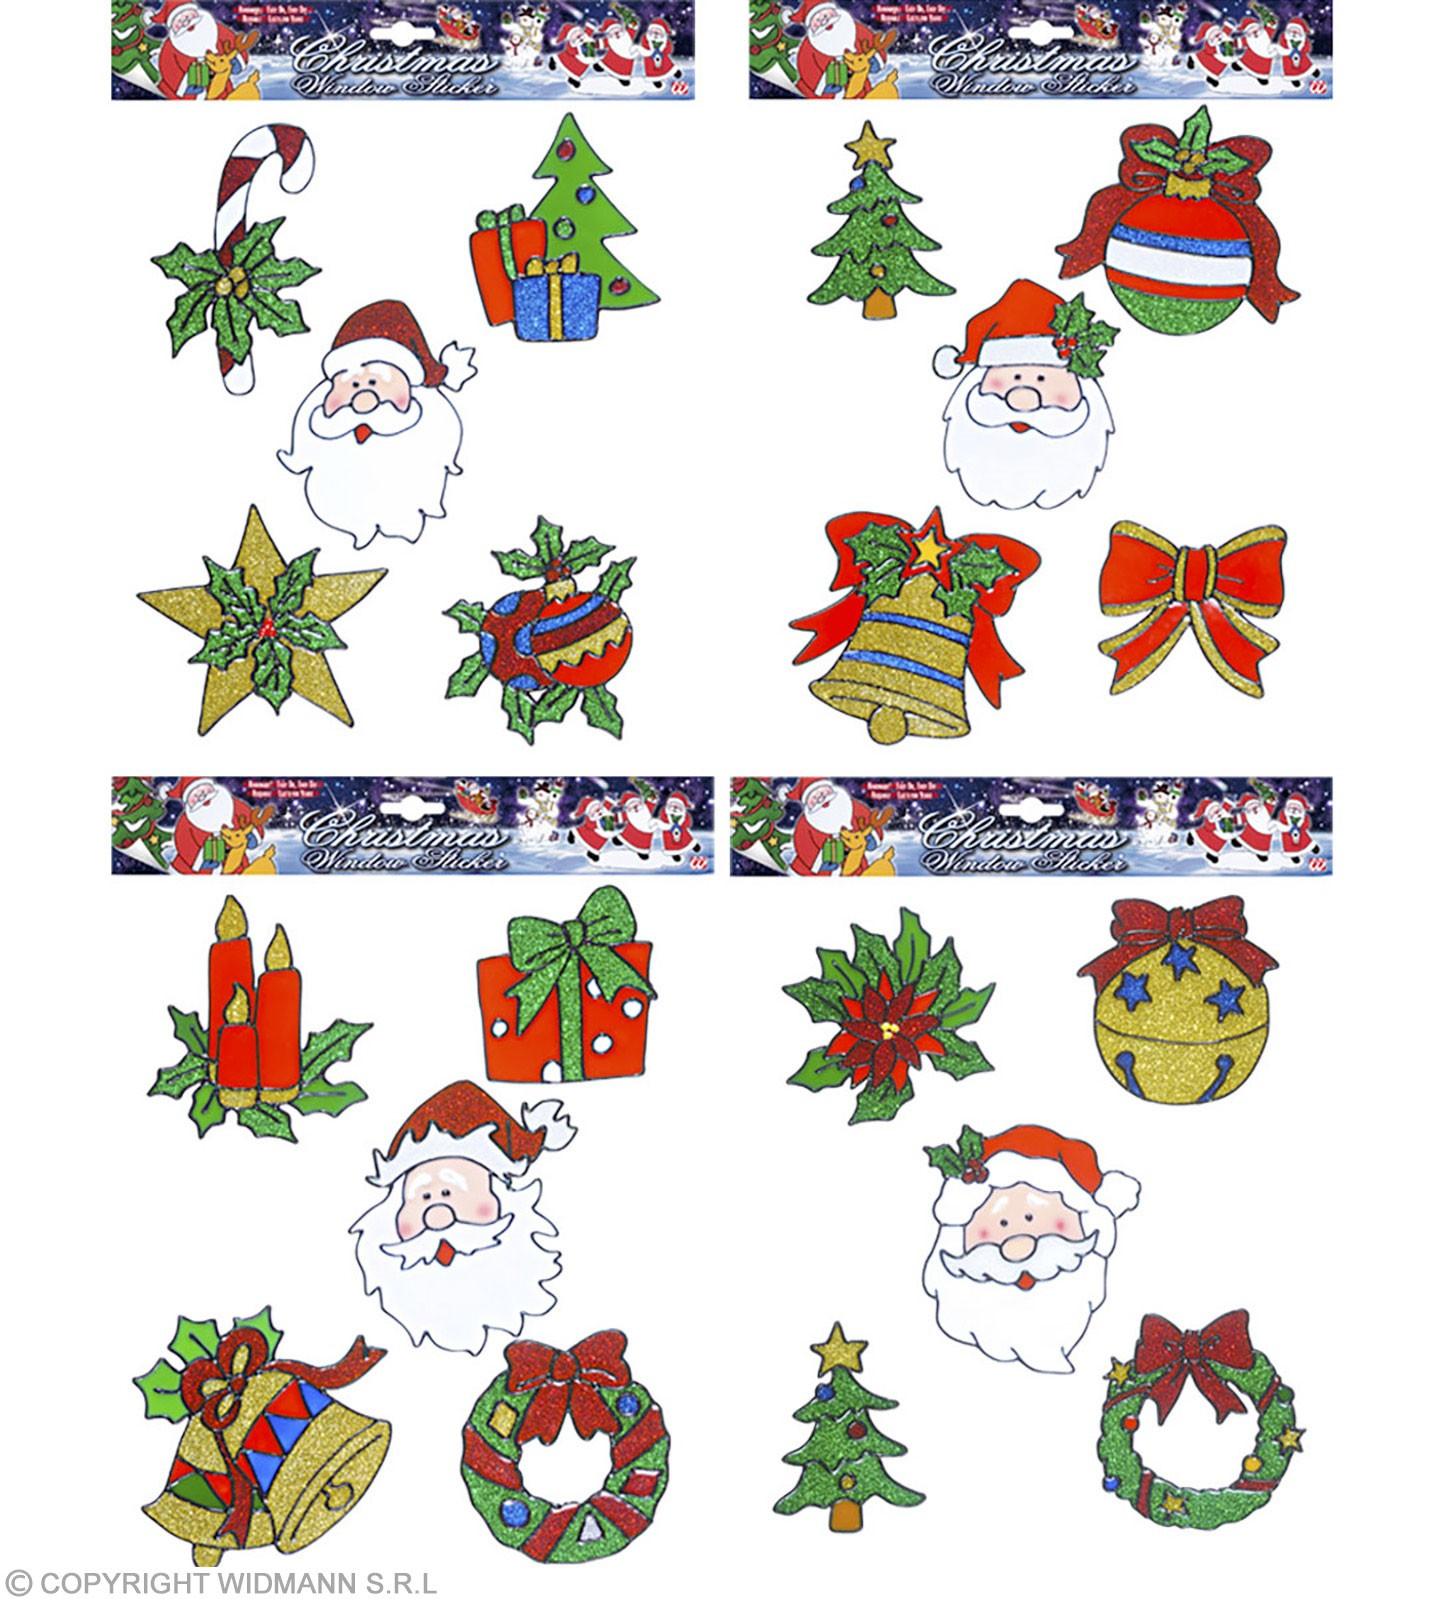 Set 5 Assorted Xmas Window Stickers Wi, Fancy Dress (Christmas)